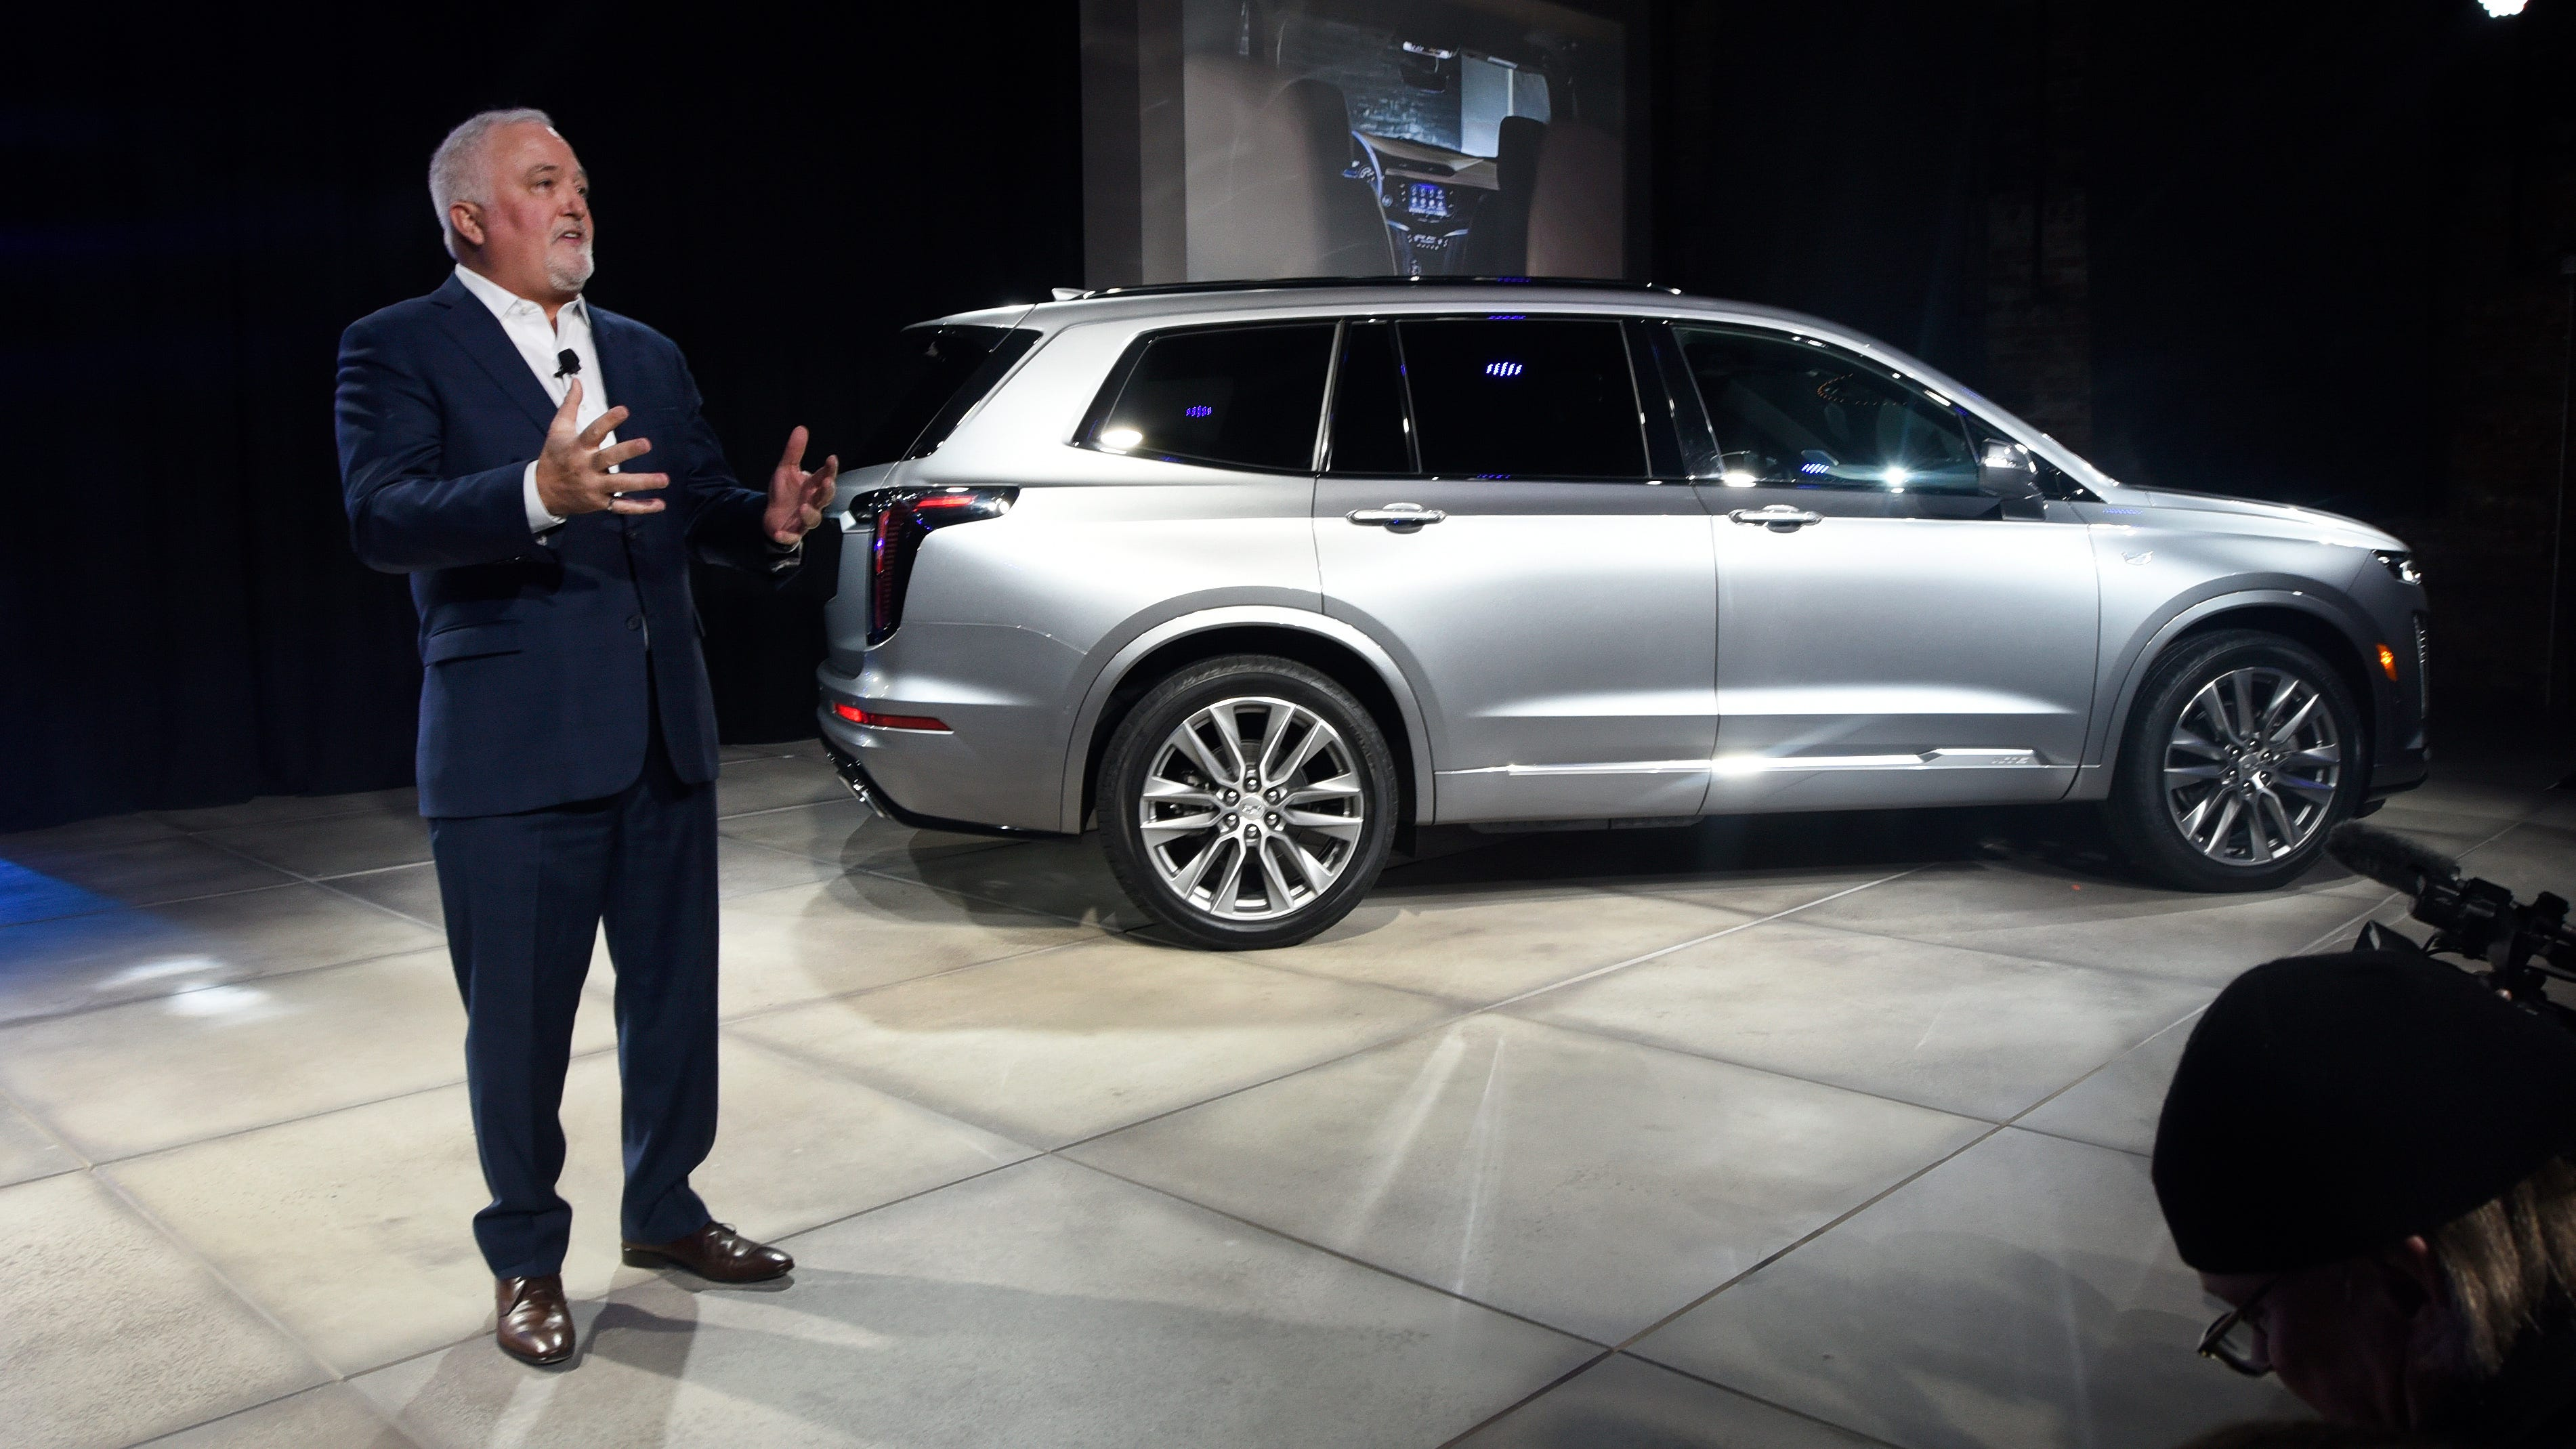 Cadillac S 3 Row Xt6 Makes Live Debut Ahead Of Detroit Auto Show